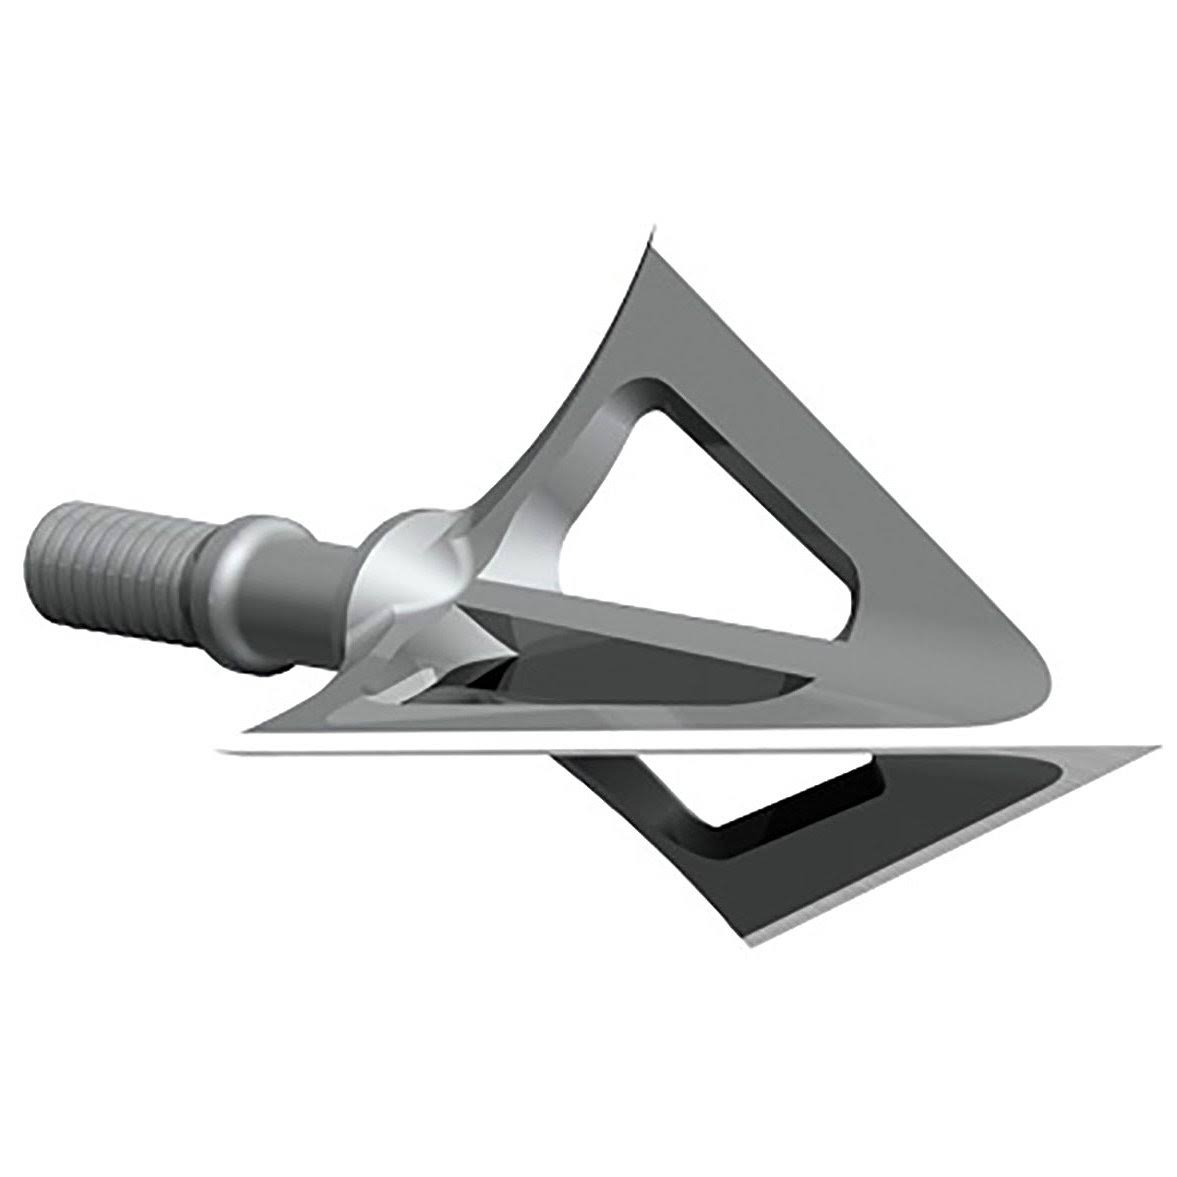 G5 Outdoors Montec Broadhead - 125g, 3 Pack